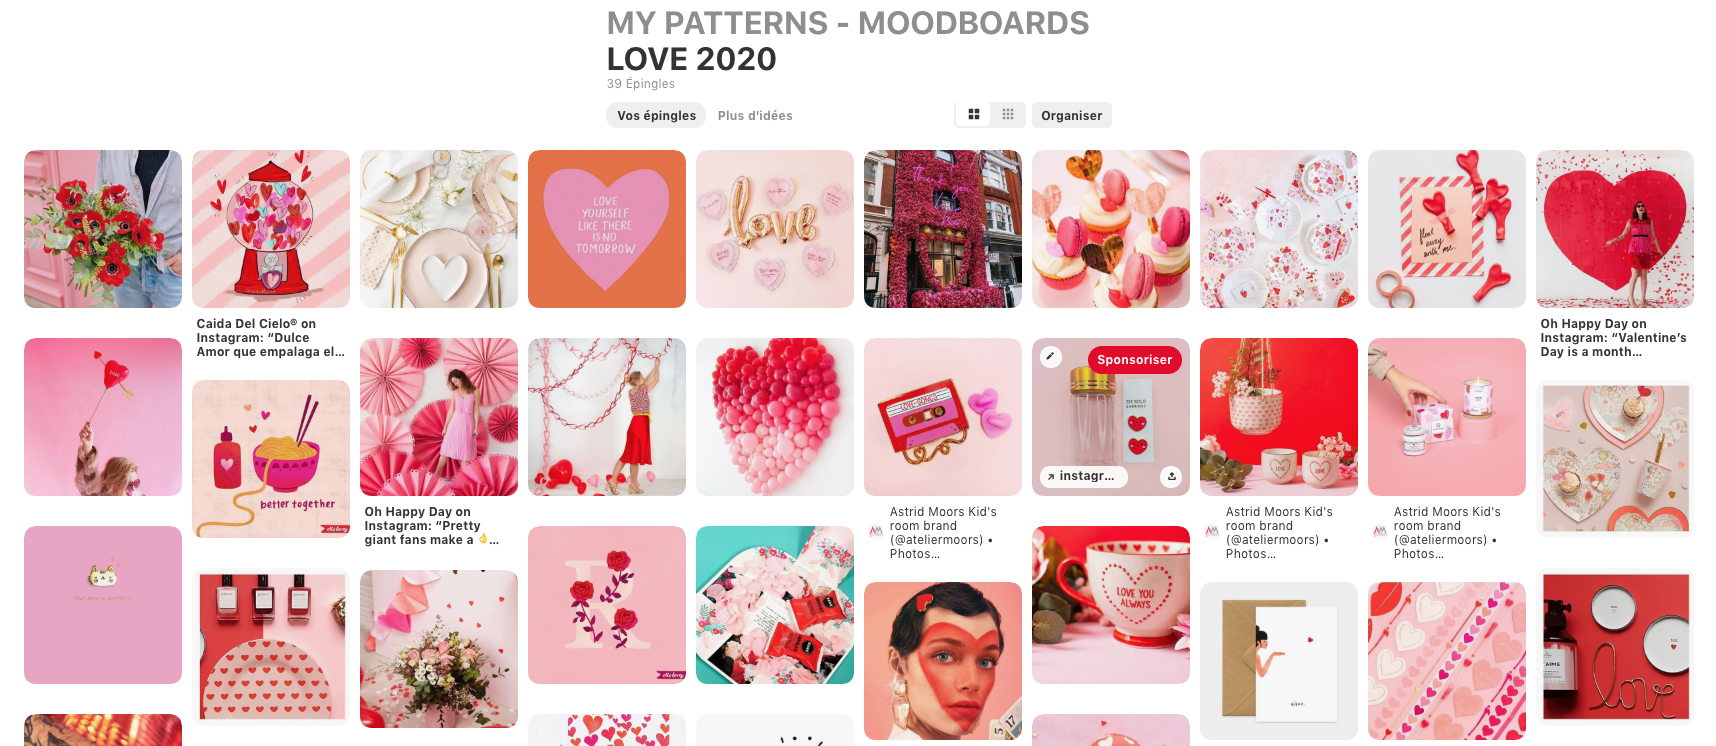 tableau-pinterest-love2020_ateliermoors